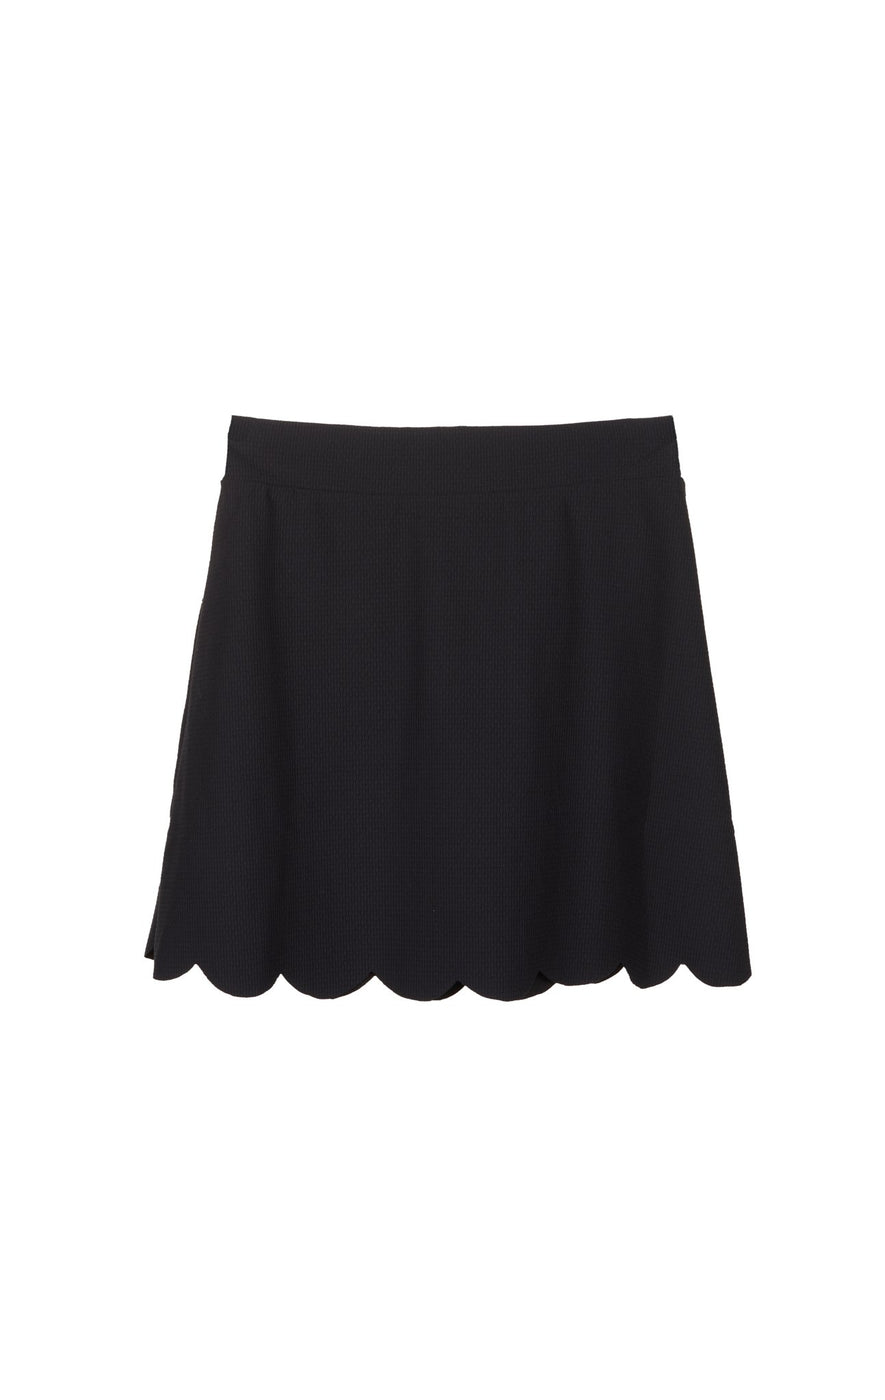 Morton Skirt in Black